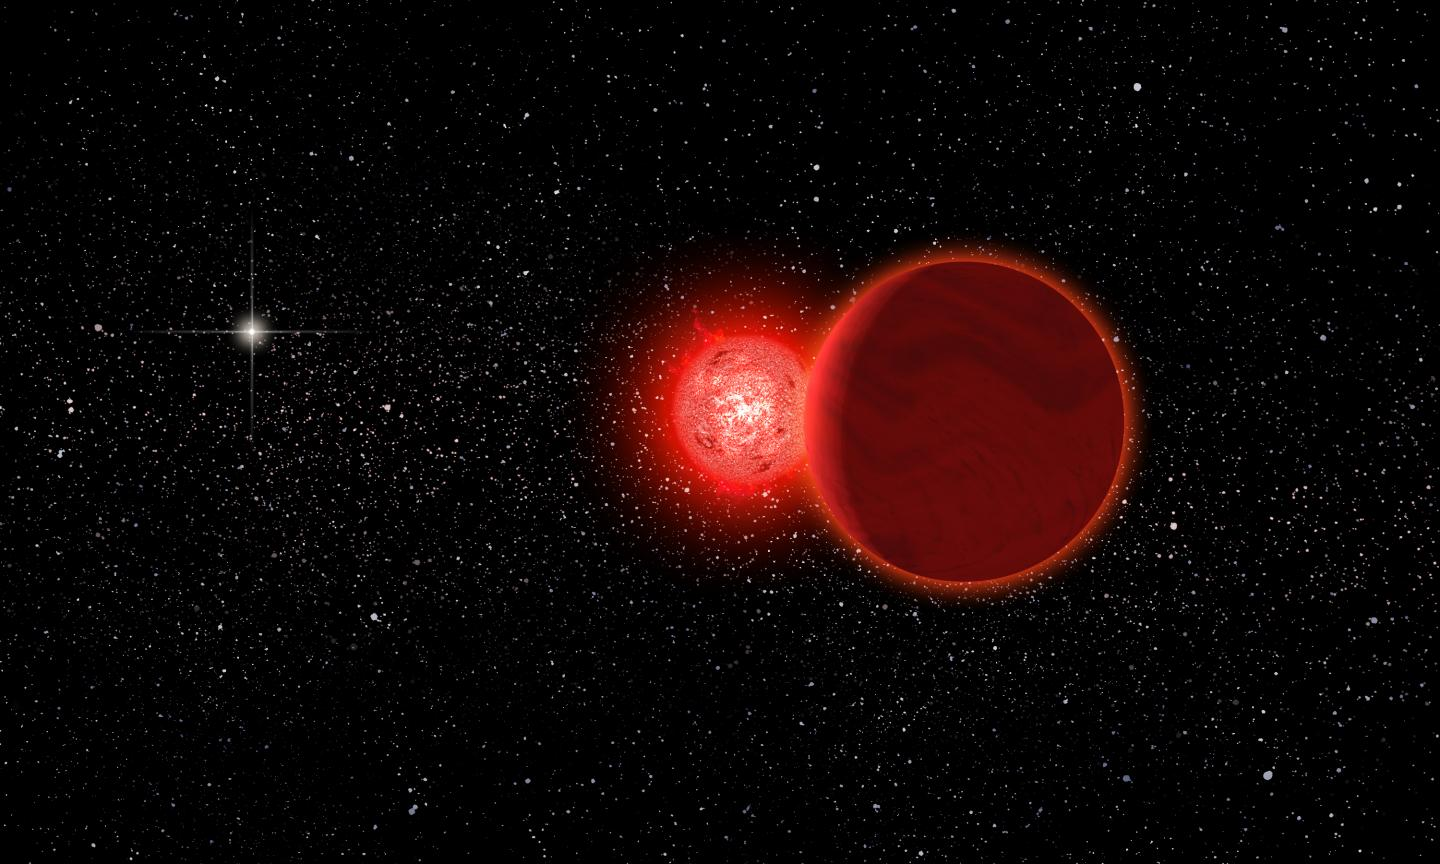 Scholz's Star during Its Flyby of the Solar System